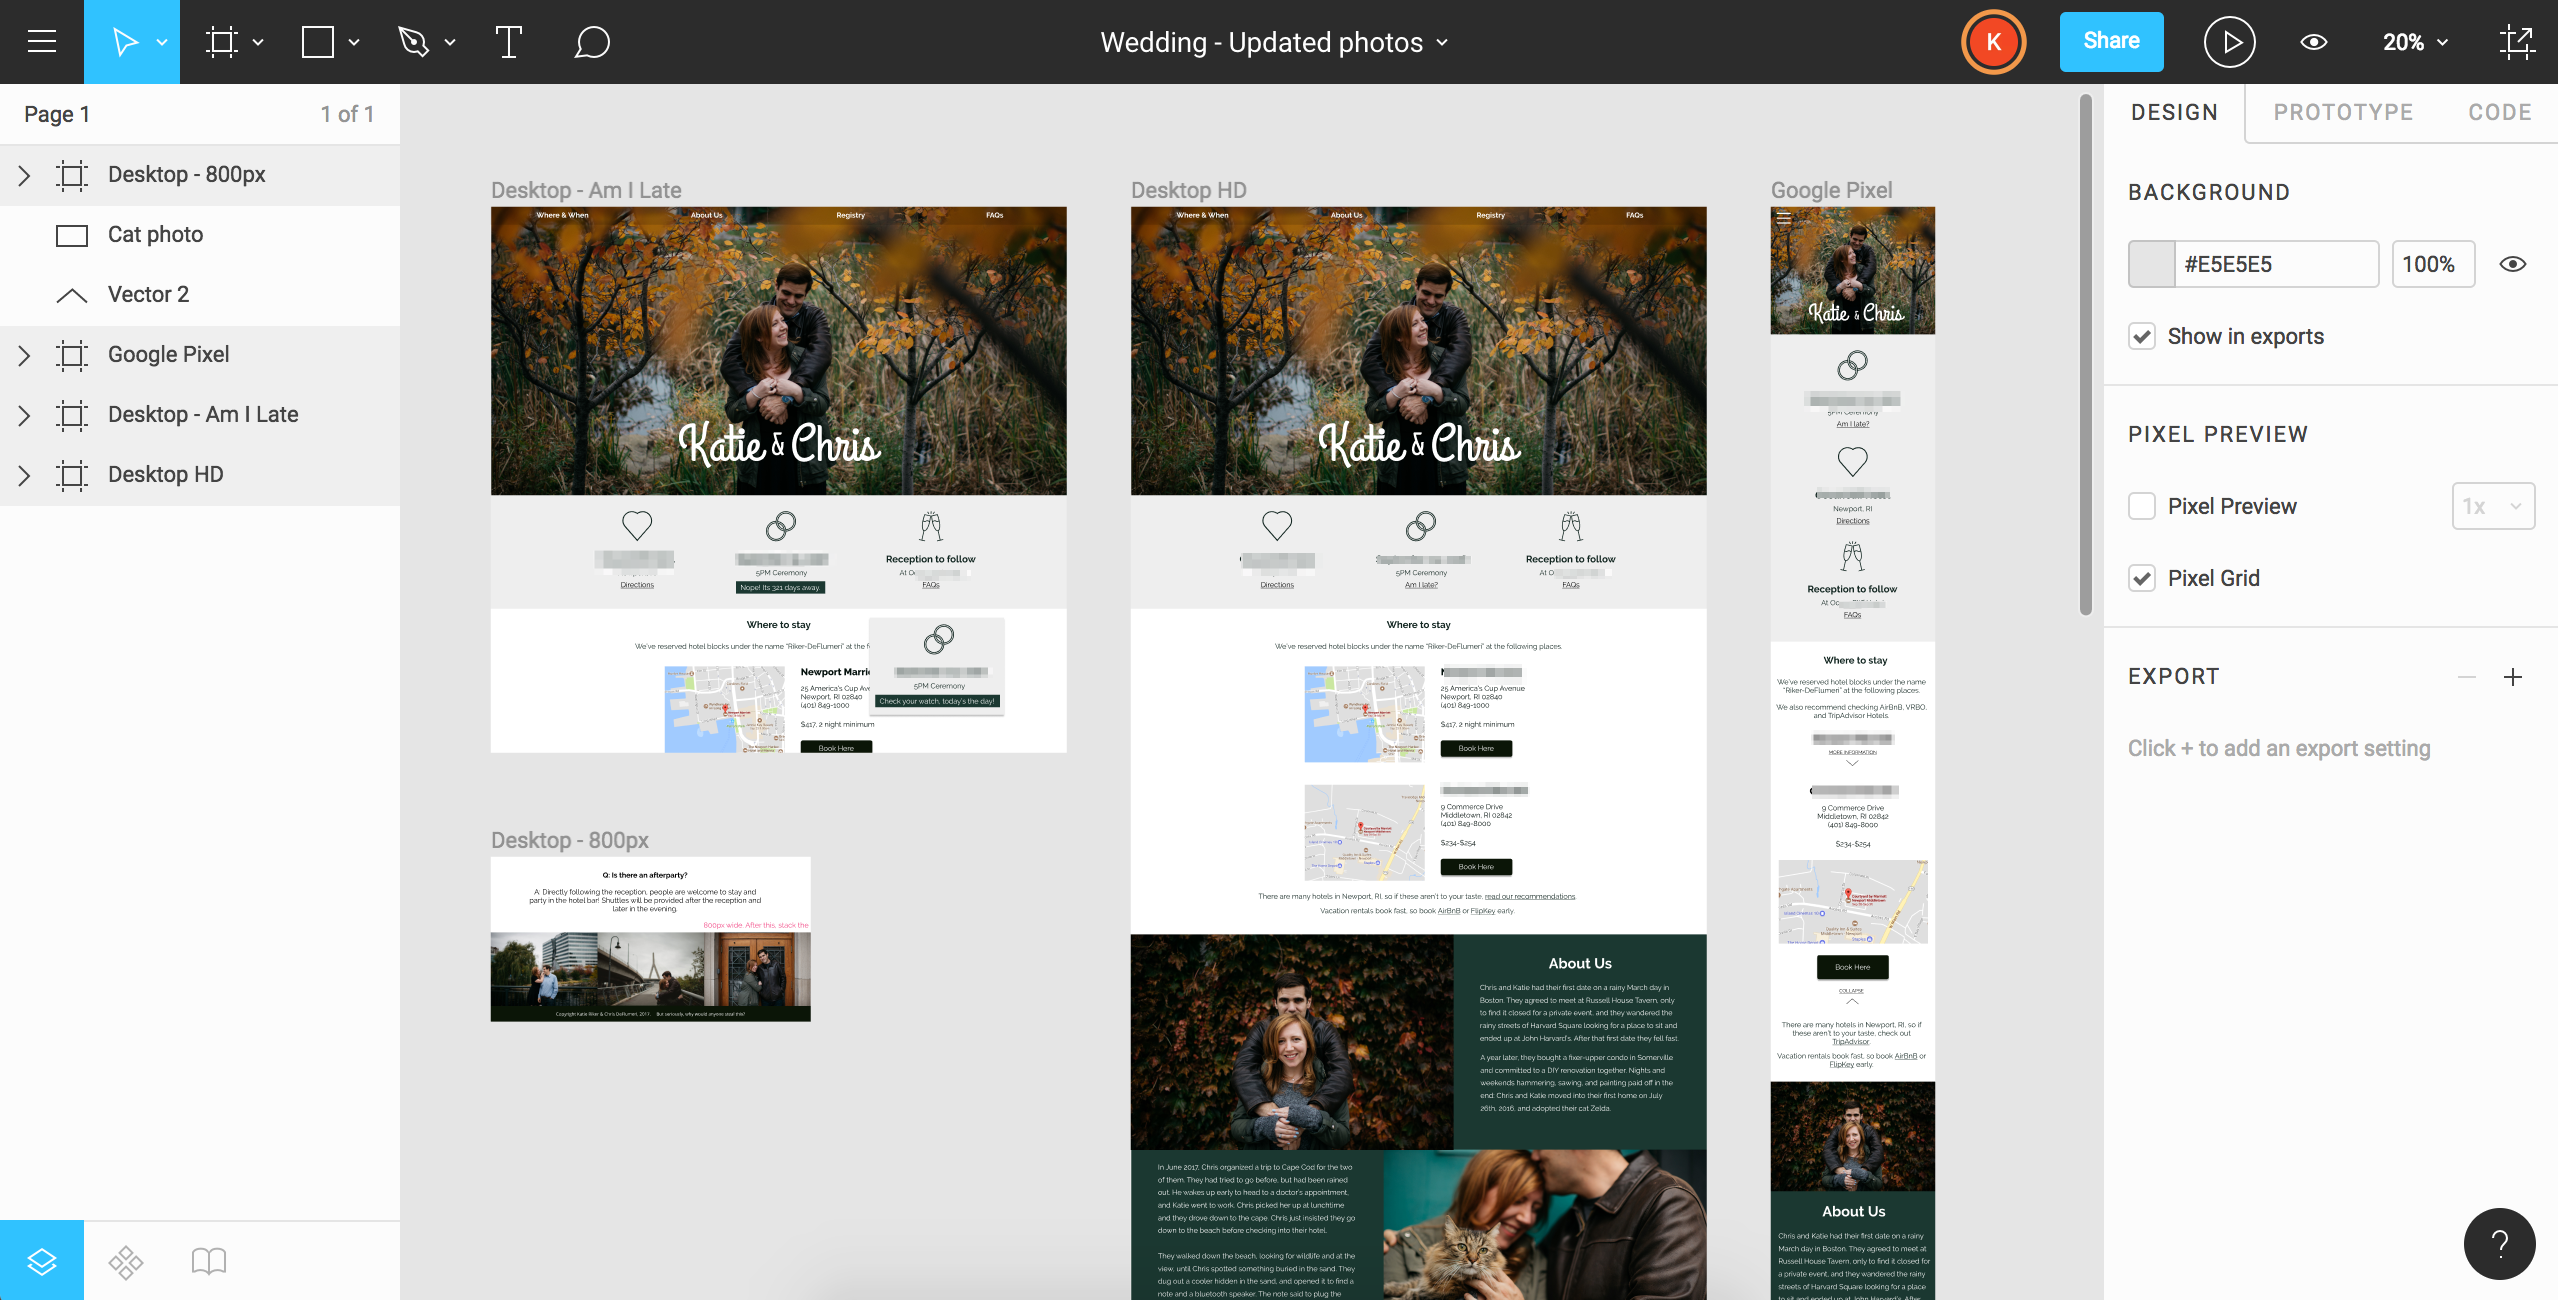 Screenshot of design file for wedding website